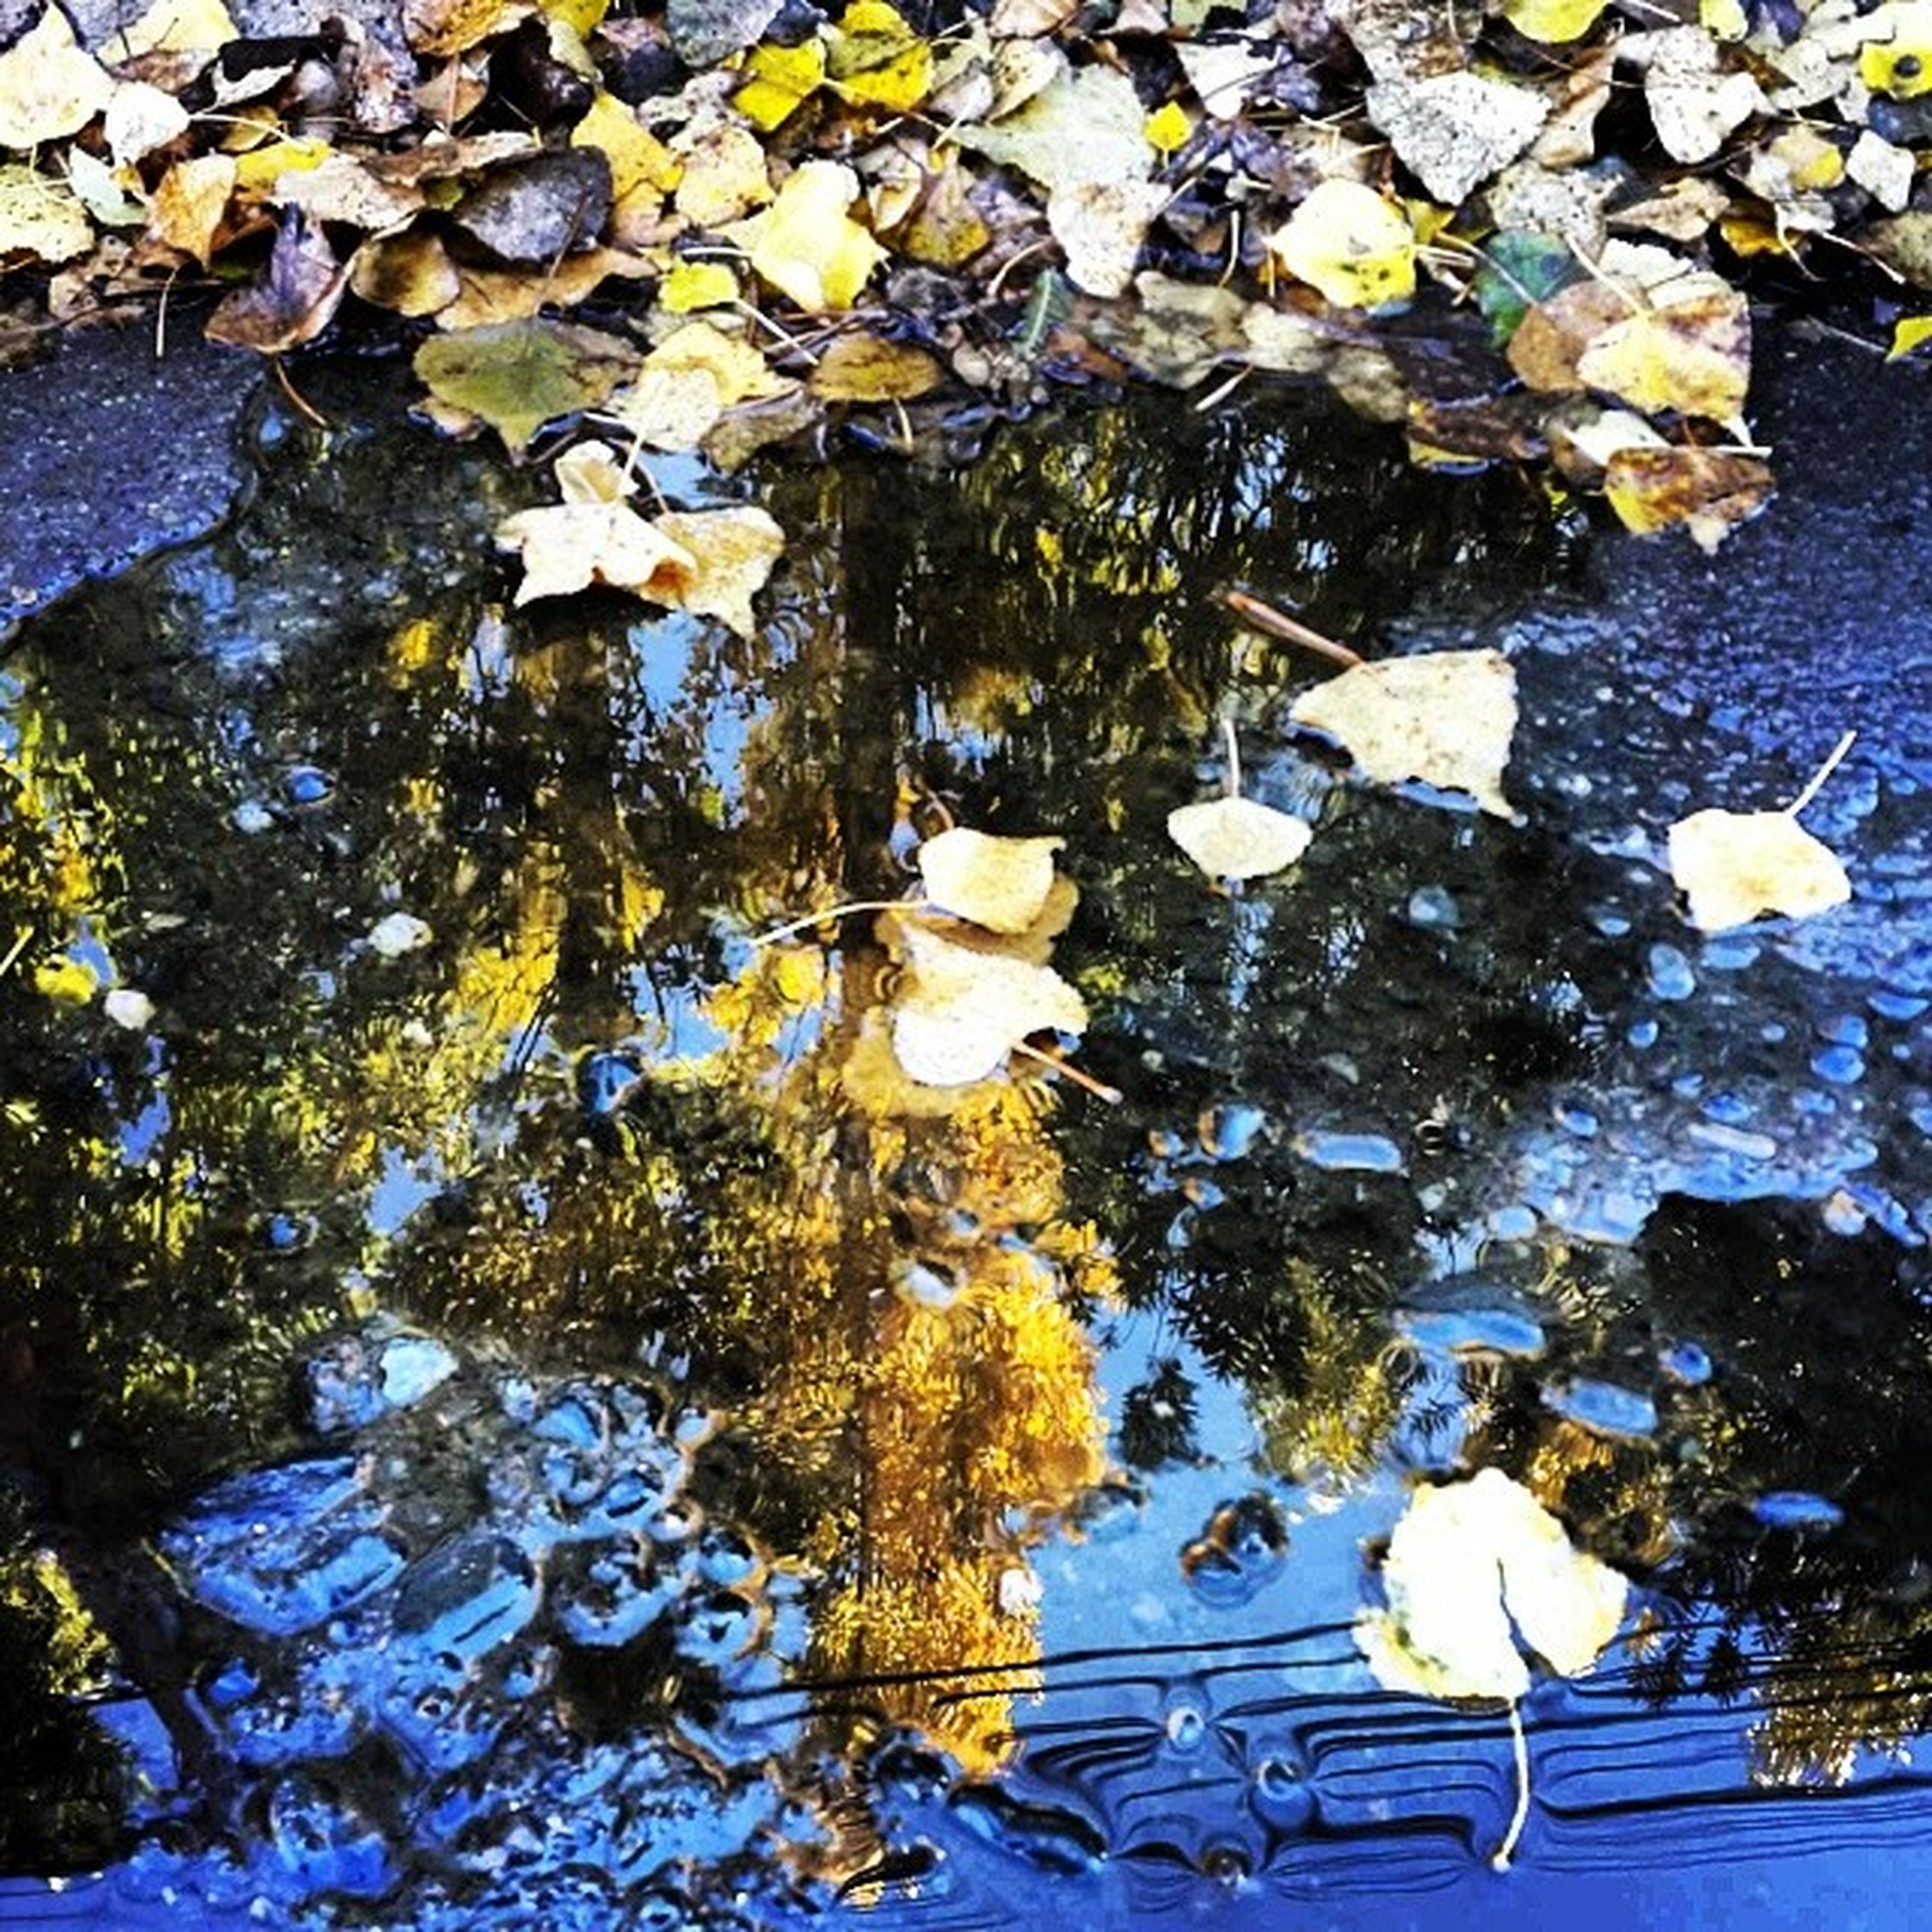 water, leaf, reflection, nature, high angle view, floating on water, beauty in nature, pond, growth, lake, flower, tranquility, white color, season, day, plant, outdoors, no people, fragility, waterfront